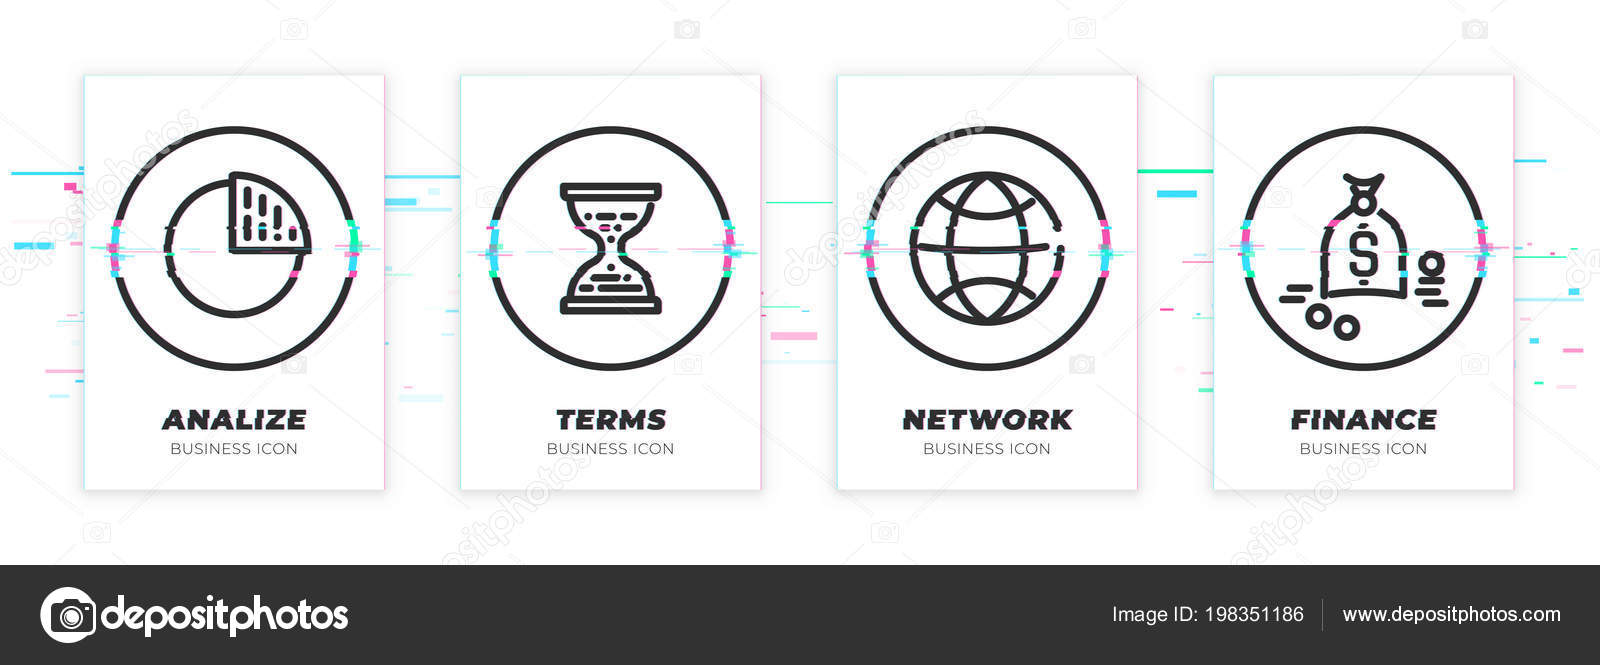 hight resolution of diagram sand clocks world money business theme glitched black icons stock vector